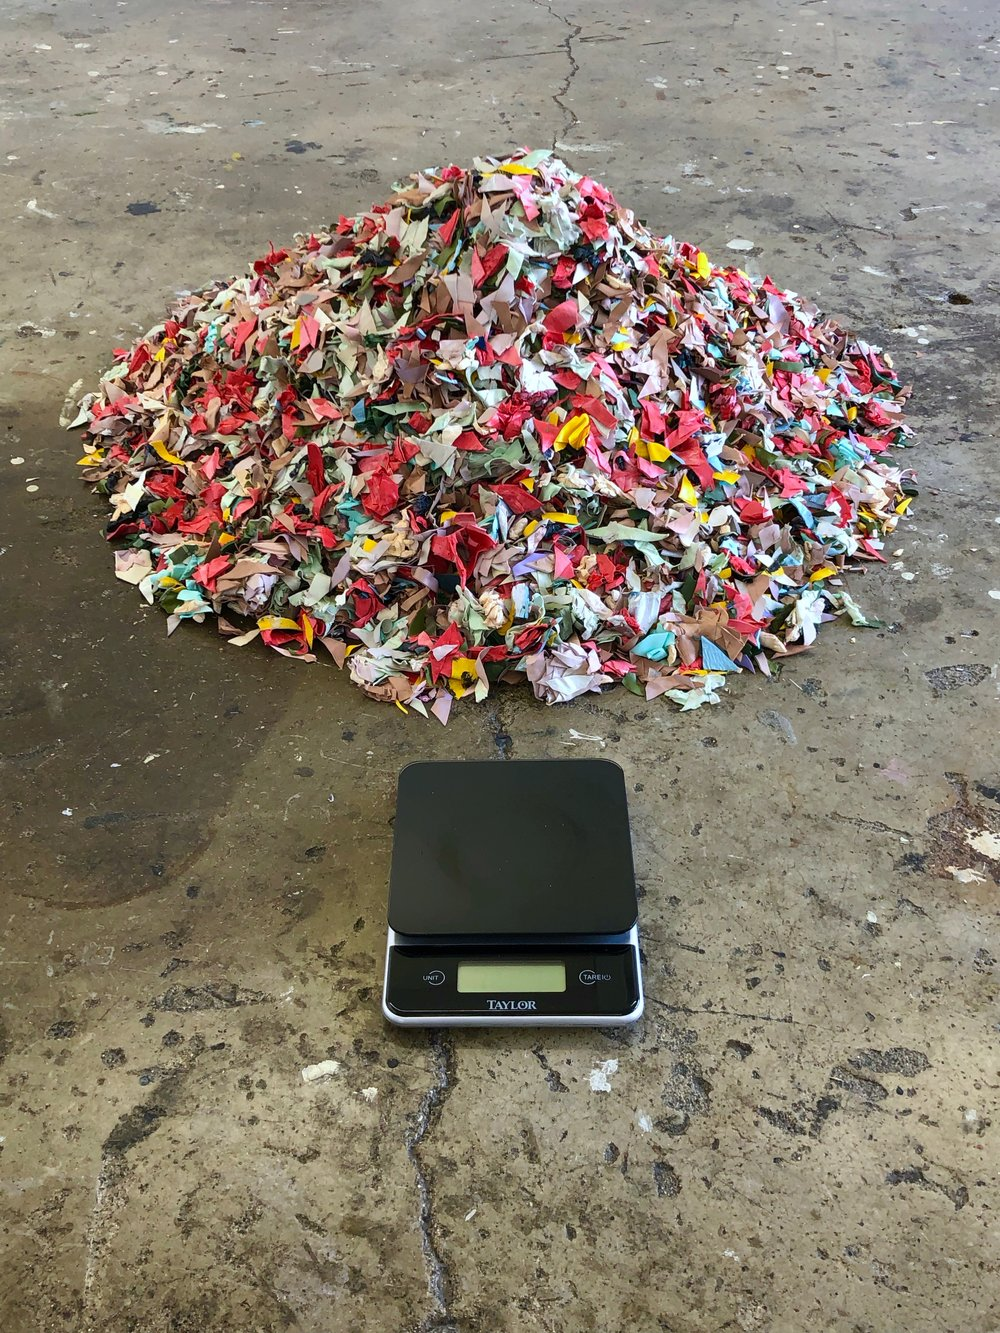 Introduction to a Pile of Confetti, 2018, Natalia DaSilva